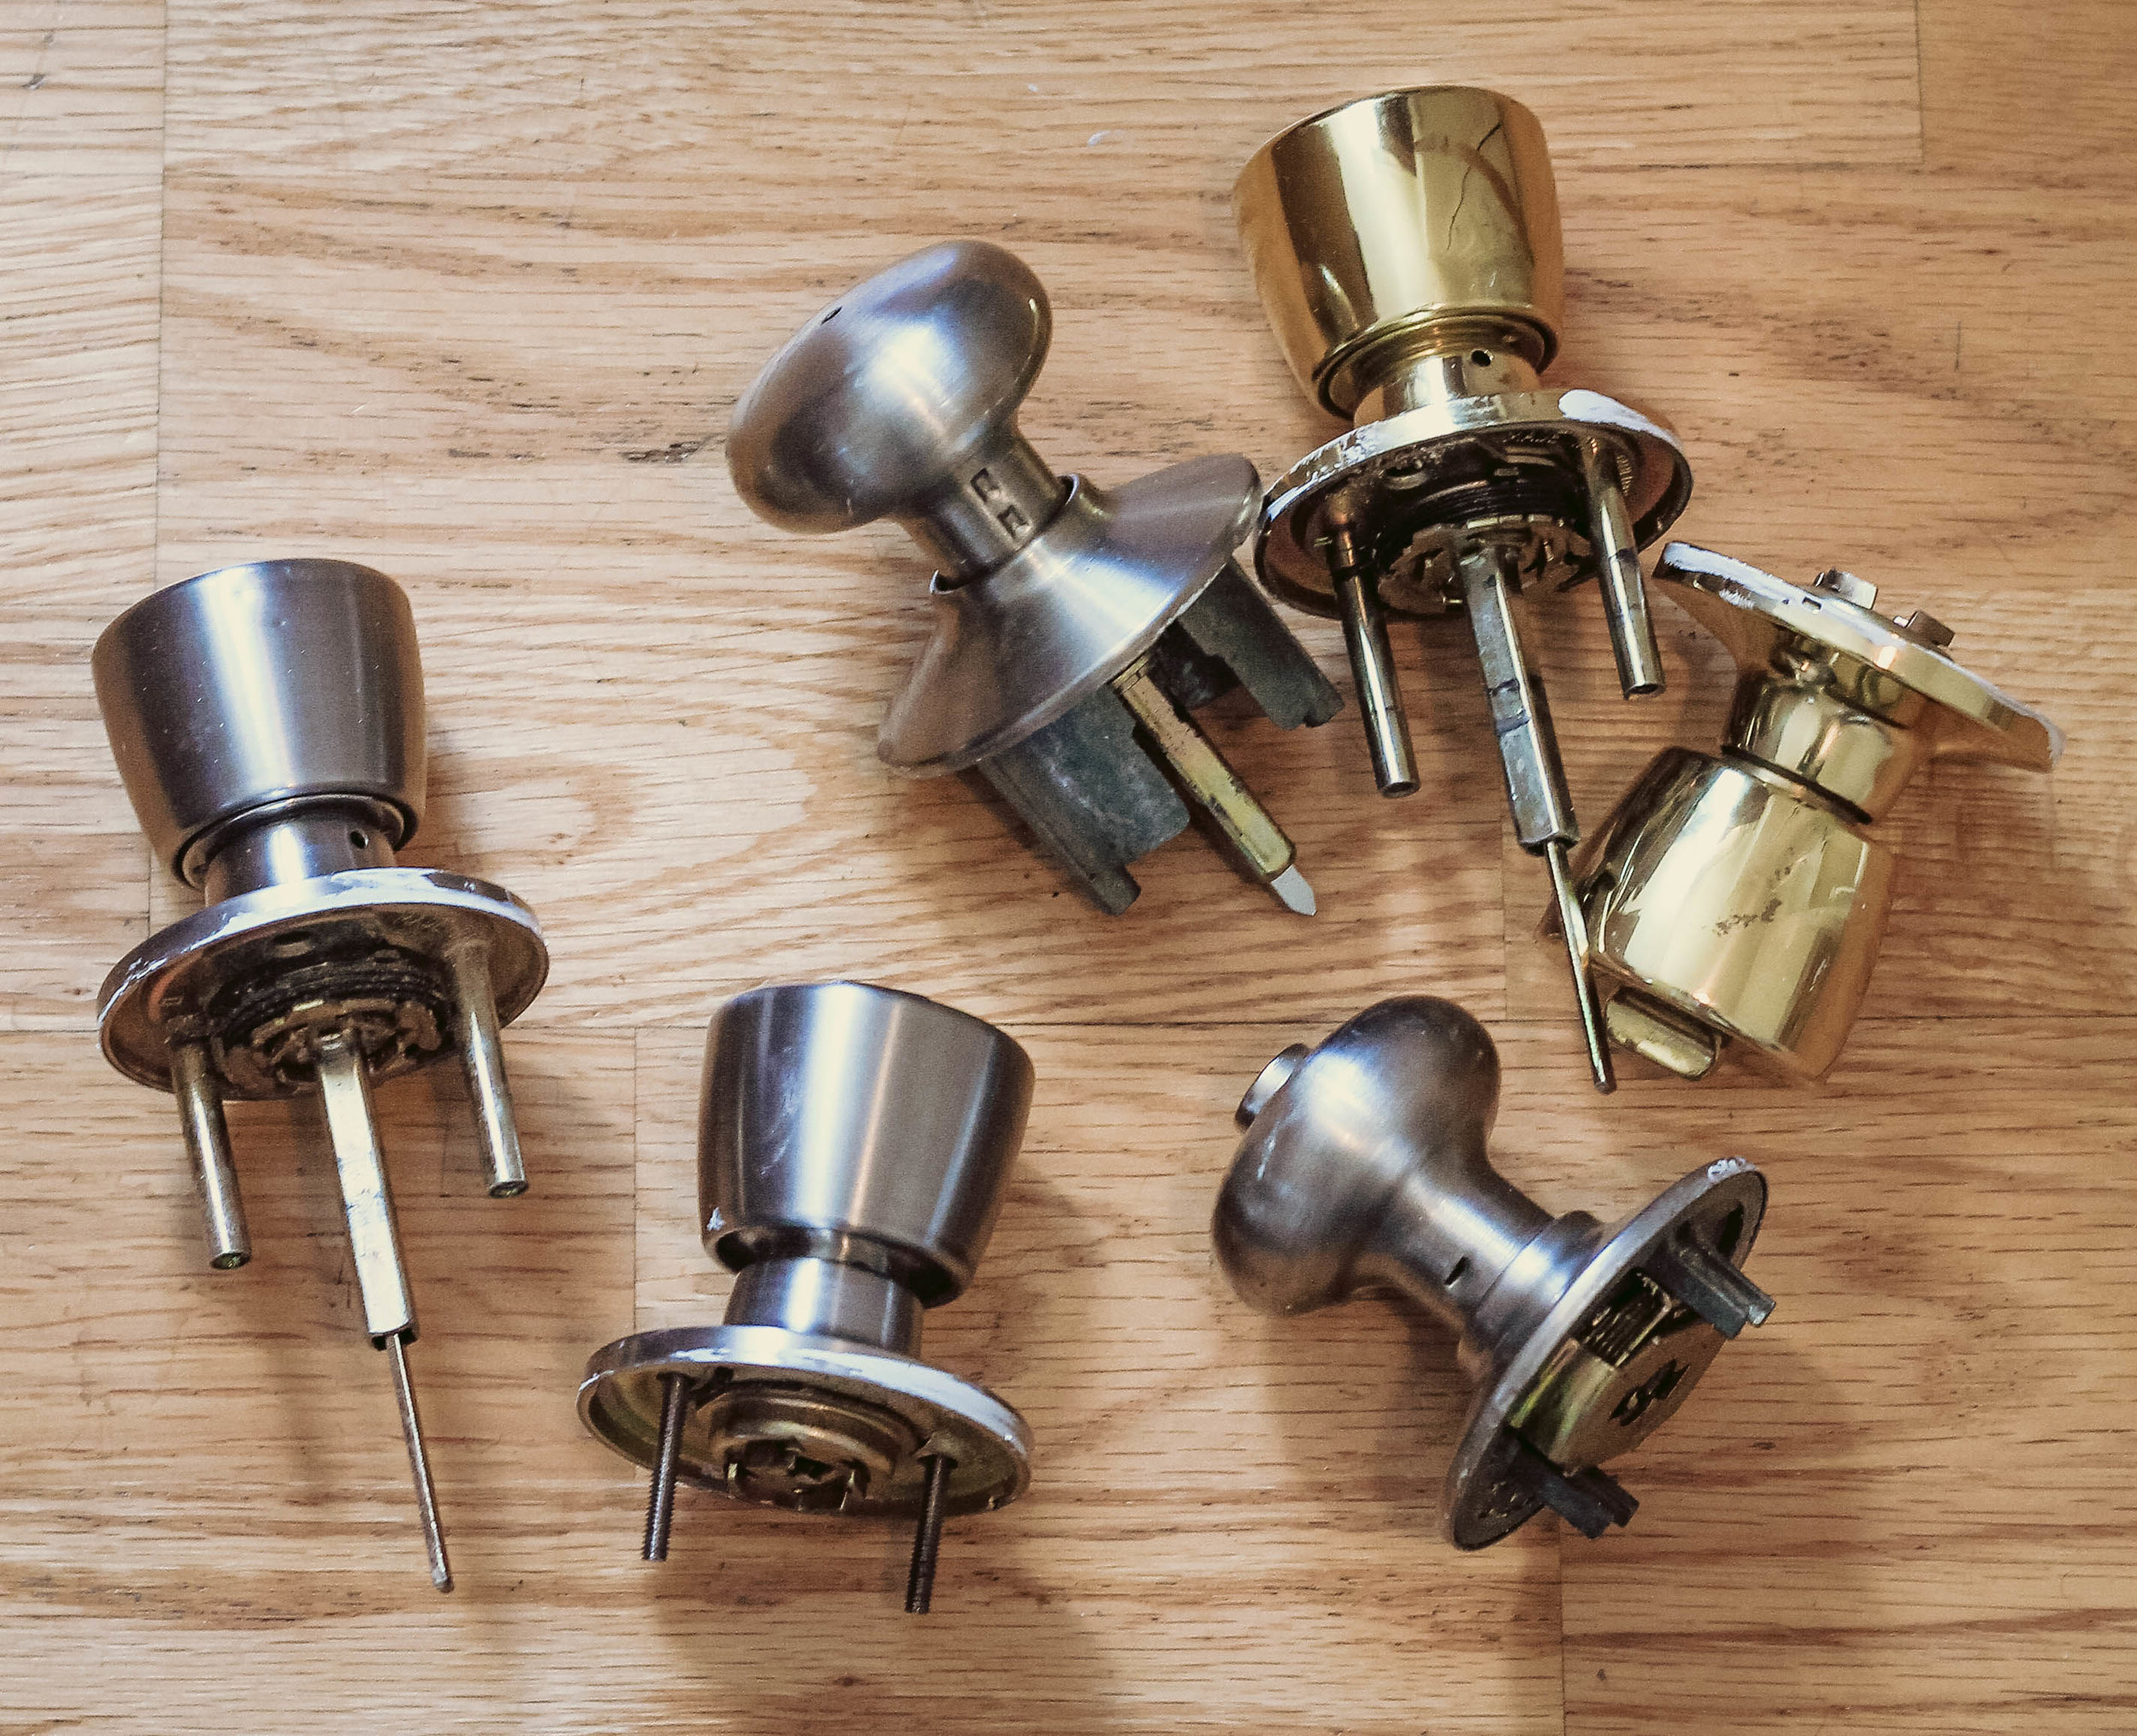 weekend projects pt. 2 | mismatched door knobs | via: chatham st. house